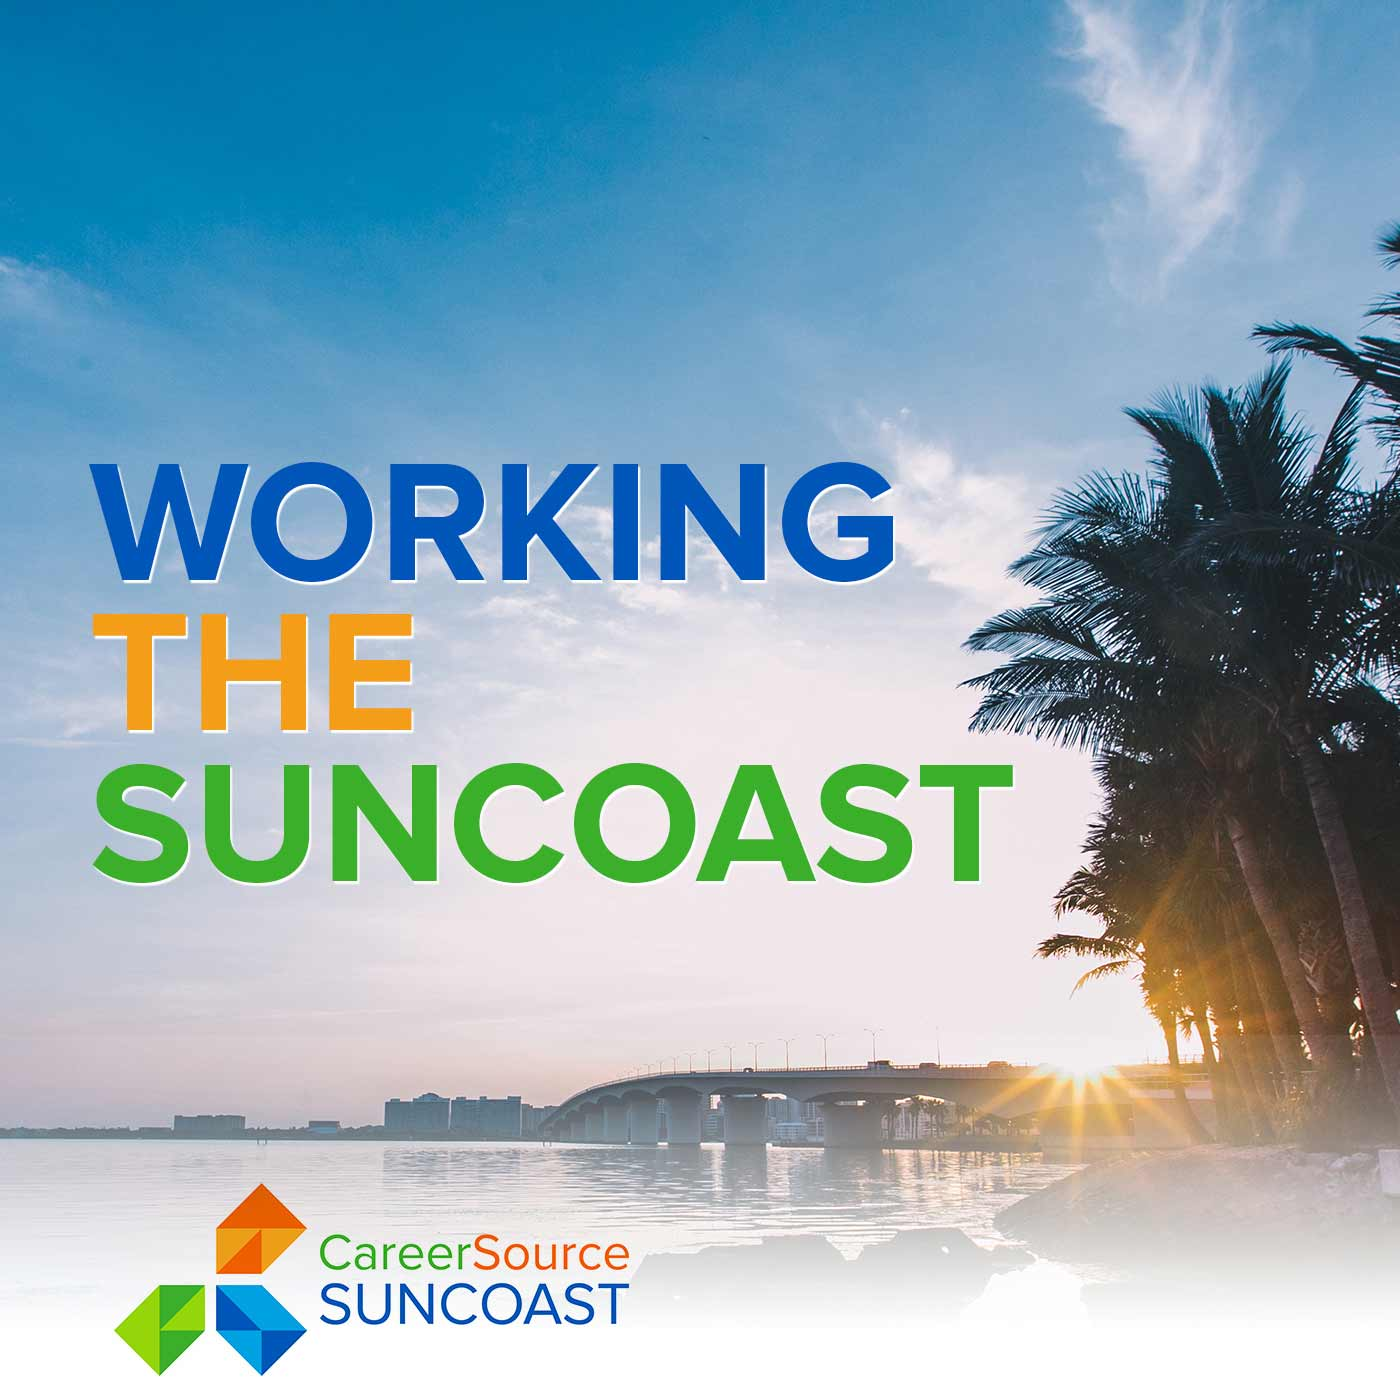 Working the Suncoast